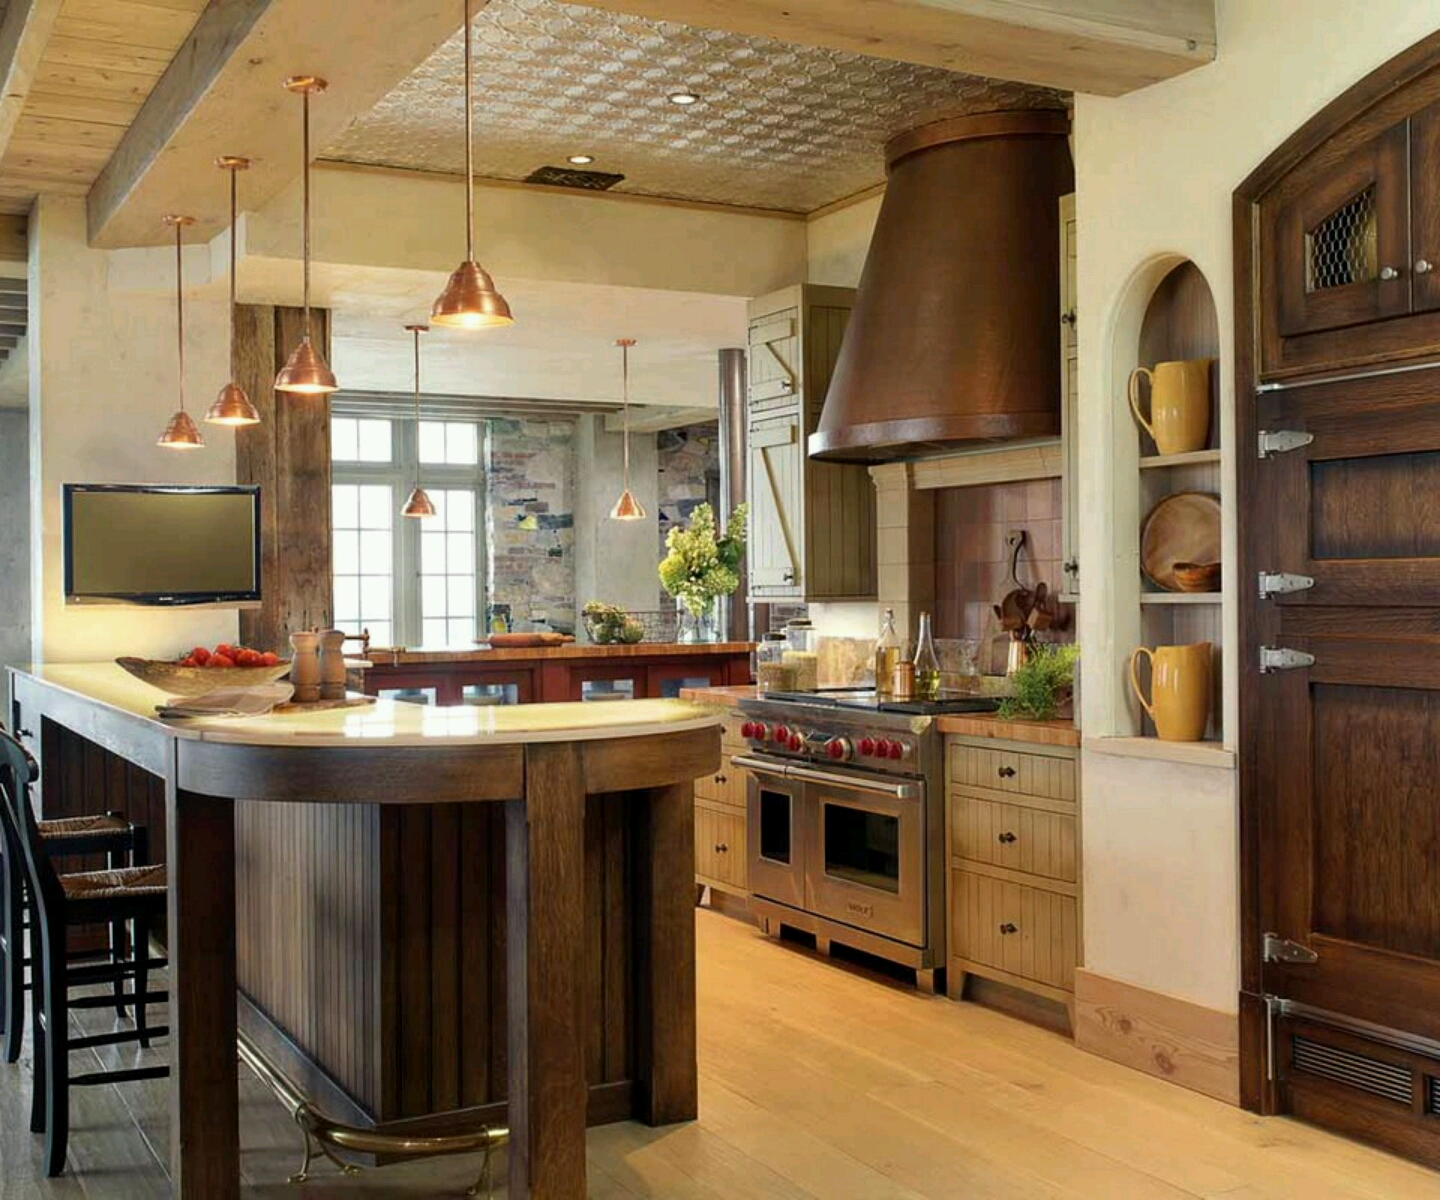 Modern home kitchen cabinet designs ideas. | New home designs